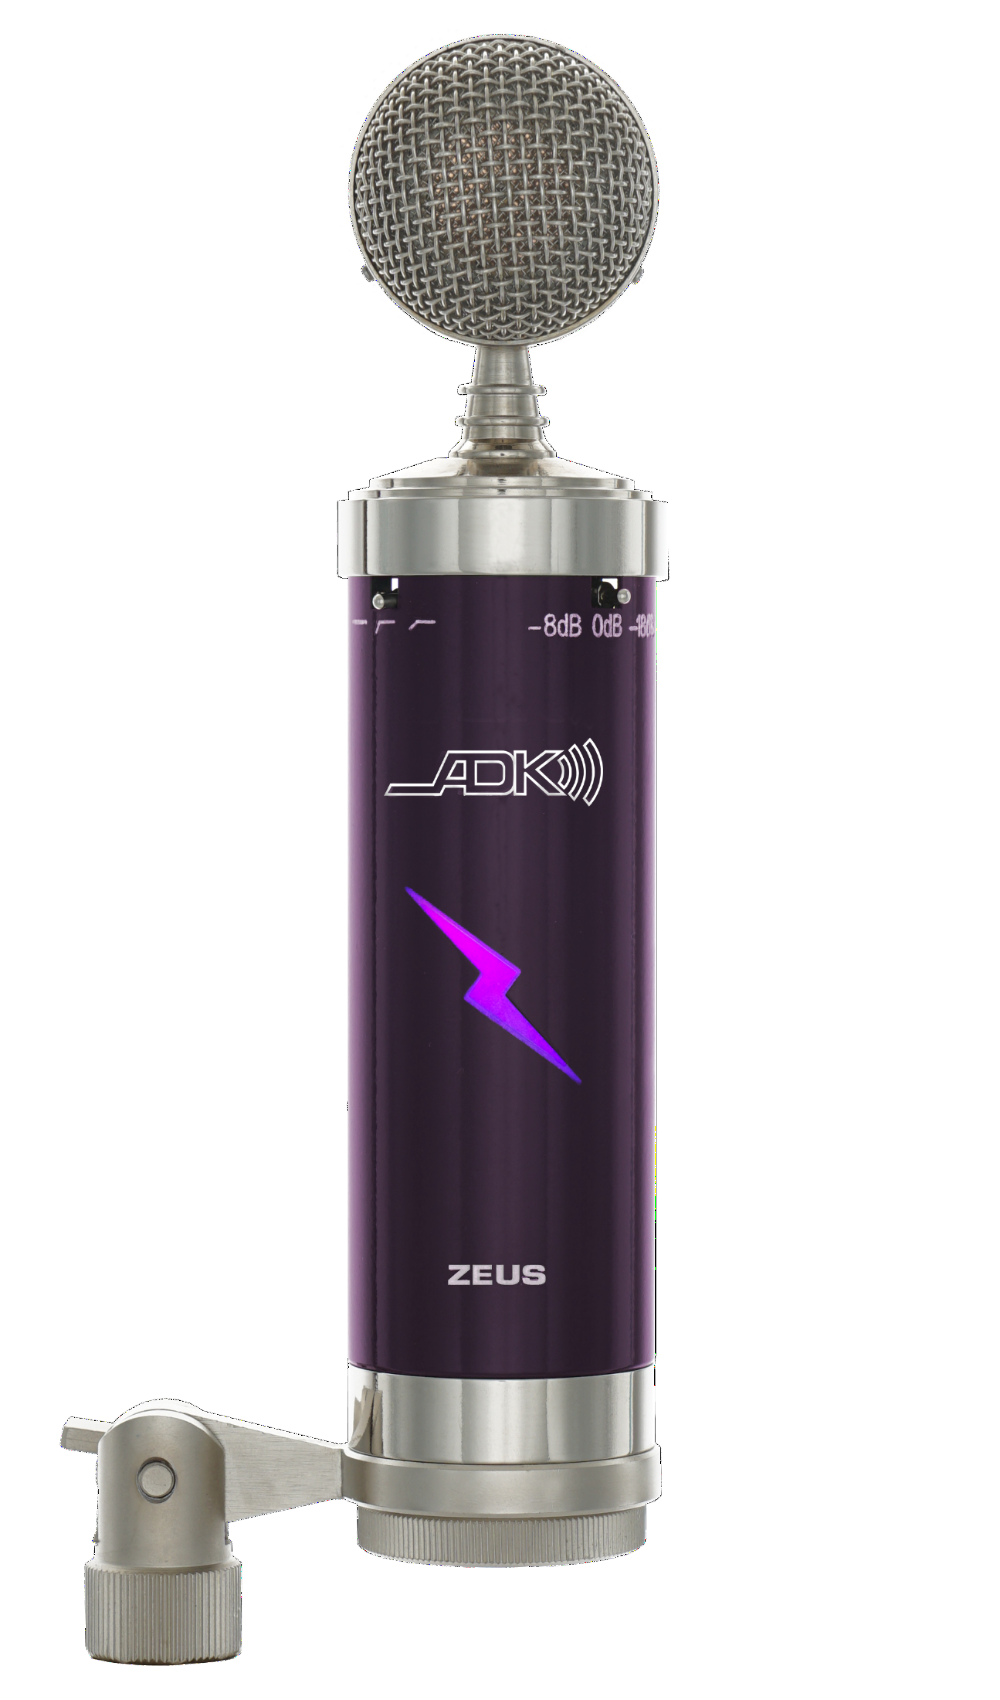 Adk Zeus Multi Tasking Tube Mic At An Excellent Price